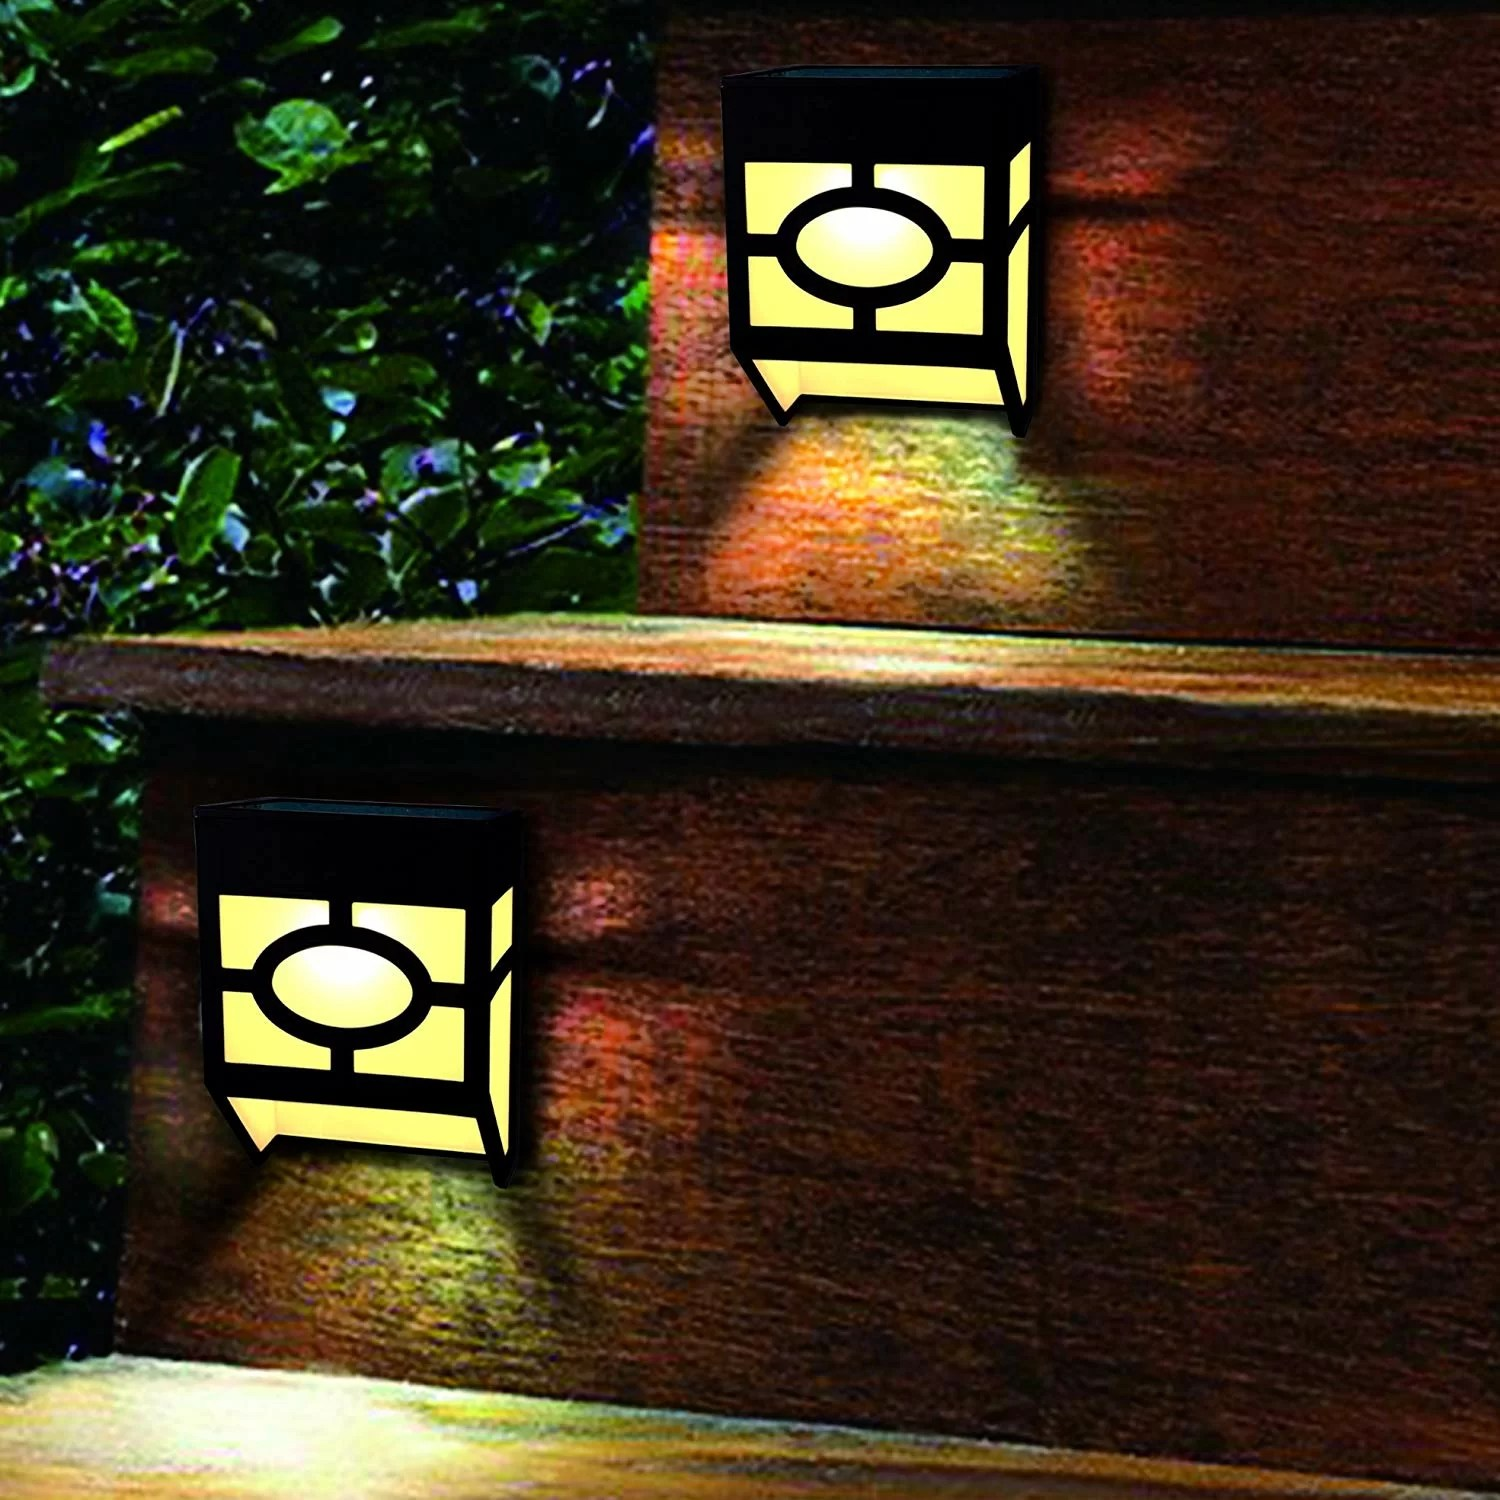 solar wall lights outdoor 2 modes solar led waterproof lighting for deck fence patio front door stair landscape yard and driveway path warm